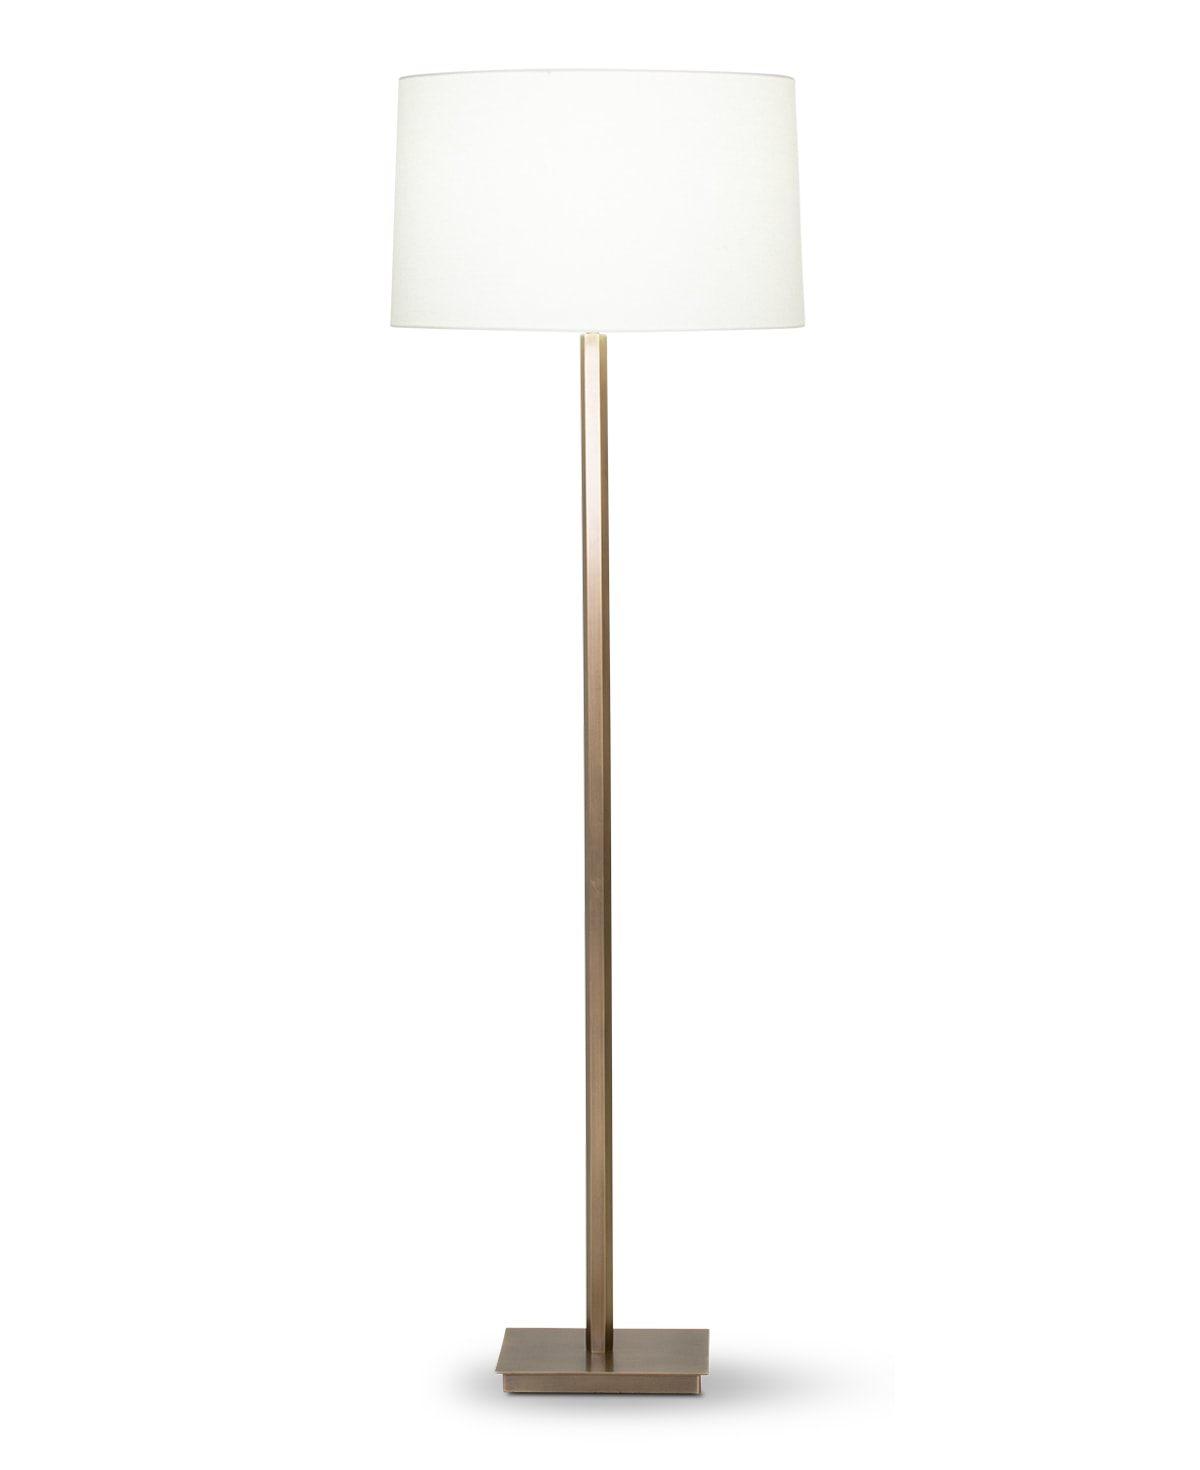 FlowDecor Sydney Floor Lamp in metal with antique brass finish and off-white linen tapered drum shade (# 4356)